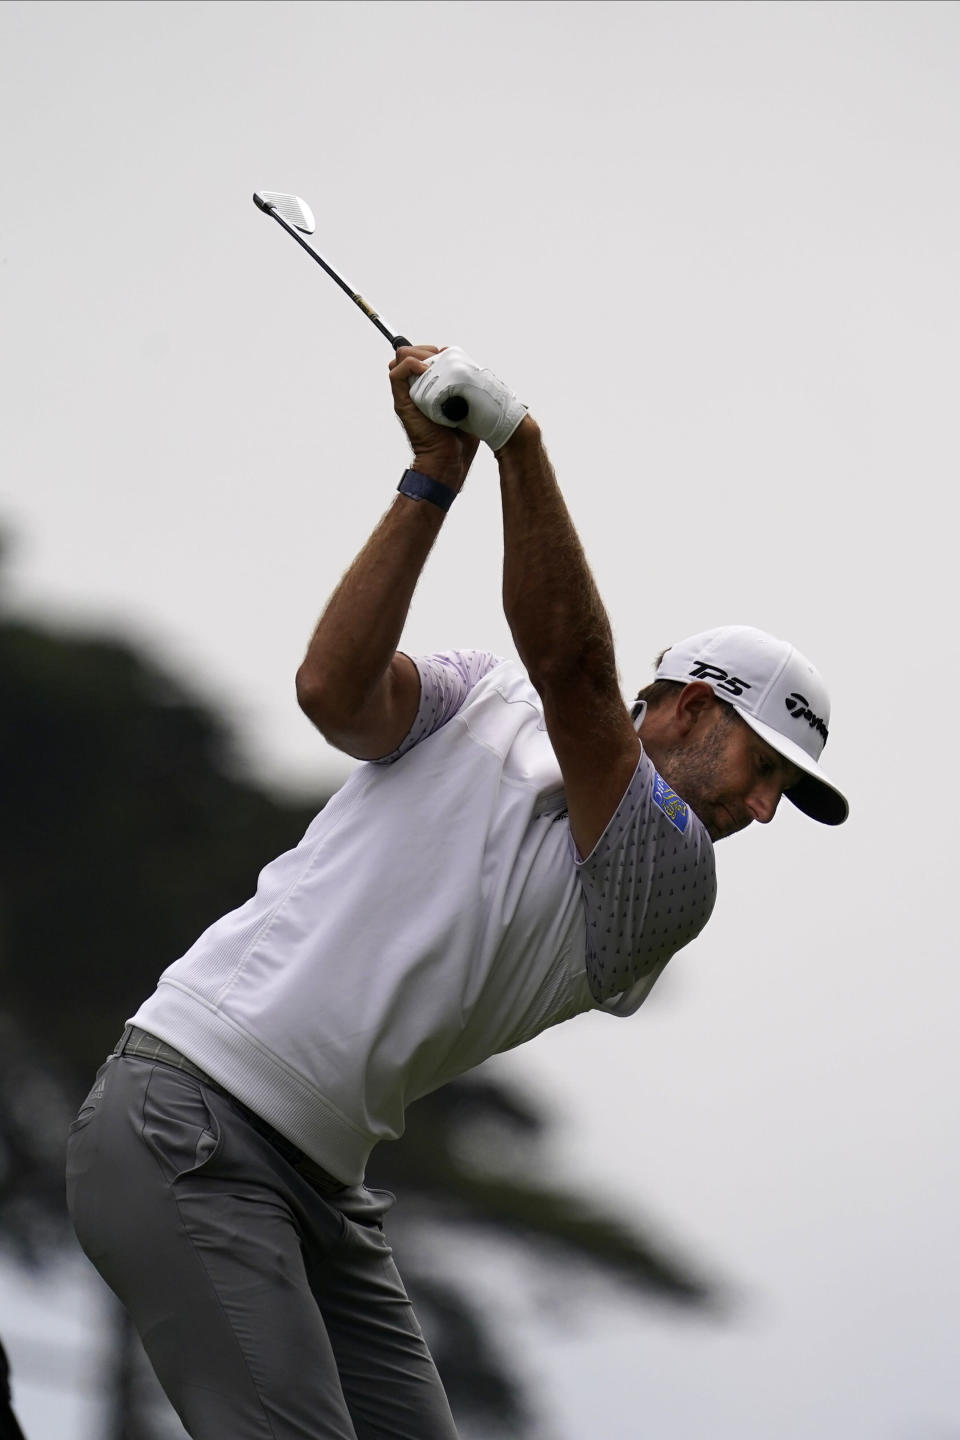 Dustin Johnson hits his tee shot on the second hole during the third round of the PGA Championship golf tournament at TPC Harding Park Saturday, Aug. 8, 2020, in San Francisco. (AP Photo/Jeff Chiu)